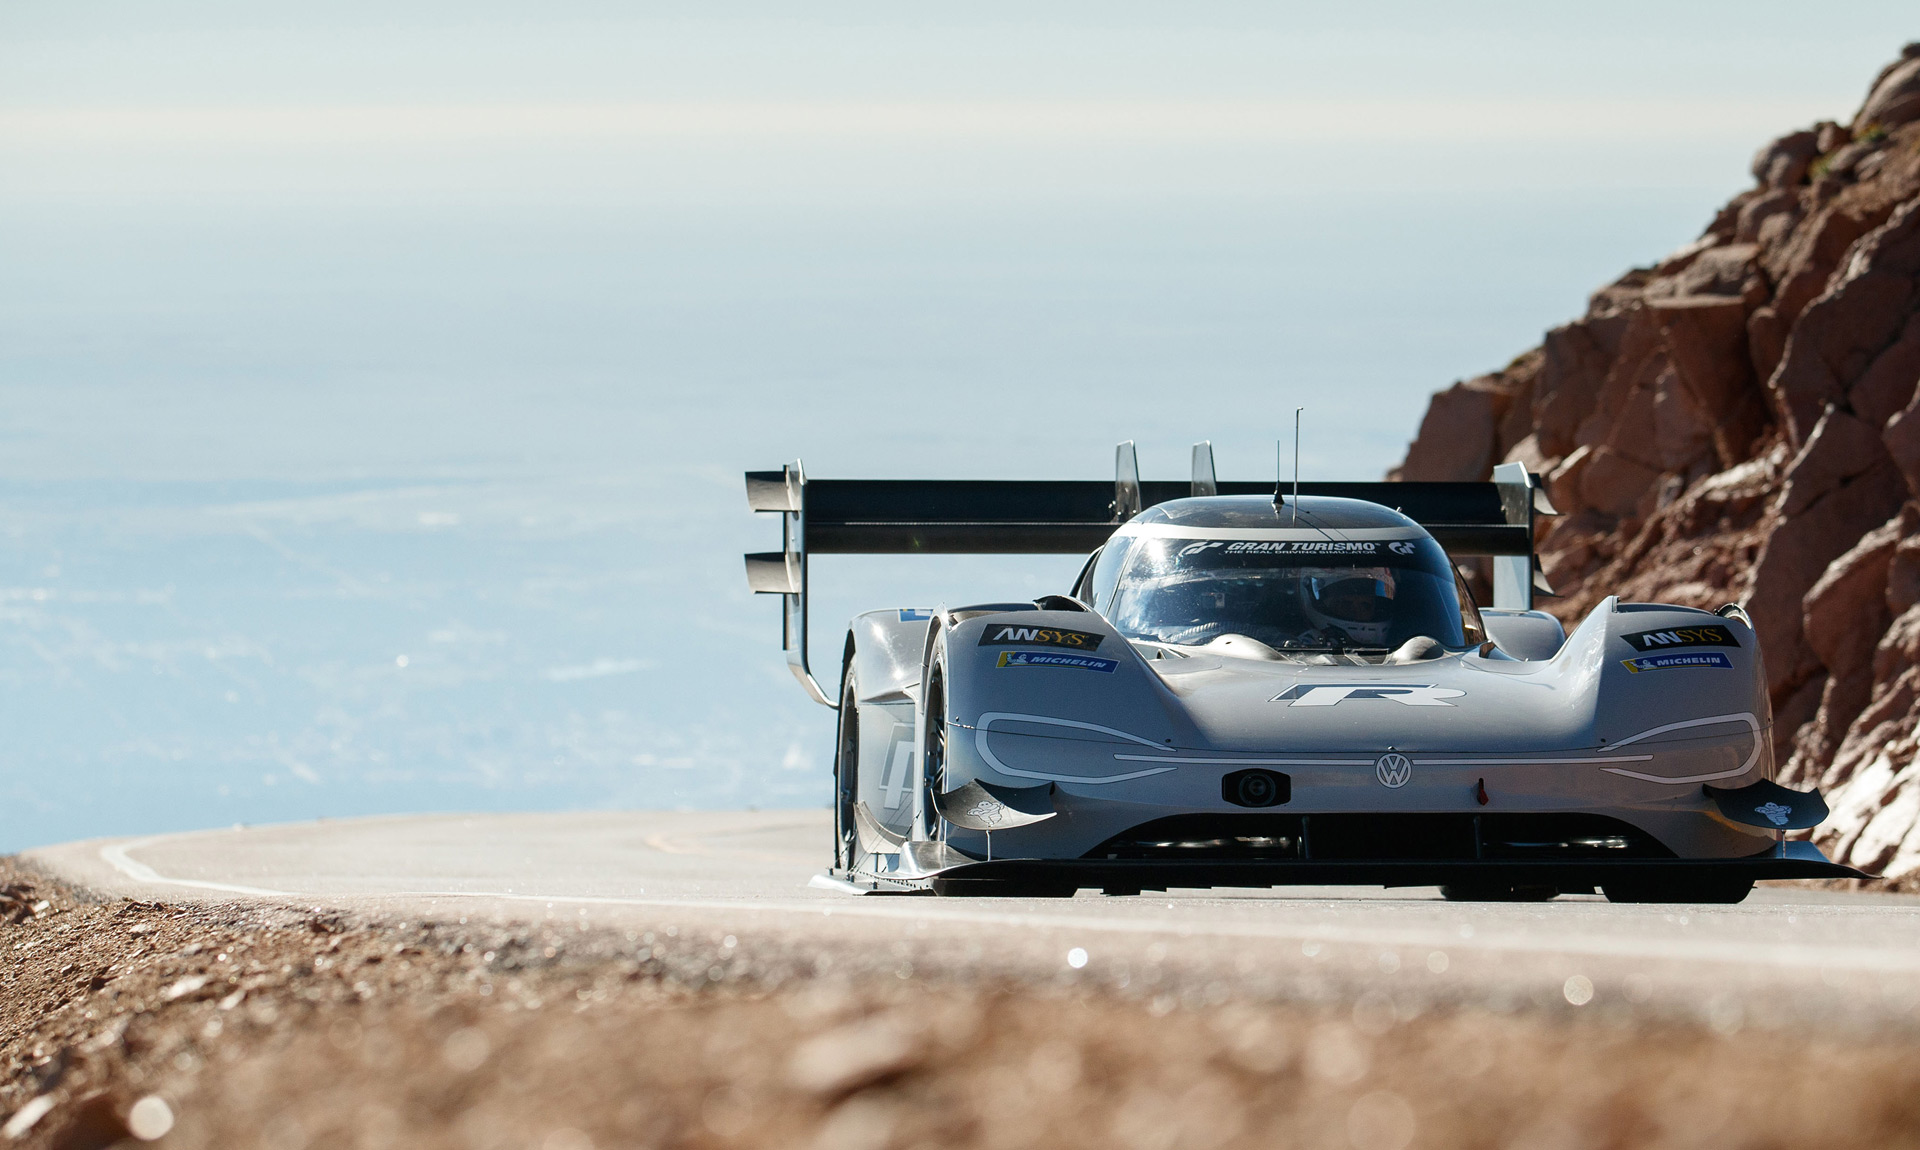 Volkswagen's ID R Pikes Peak race car shows why you should care about electric car racing